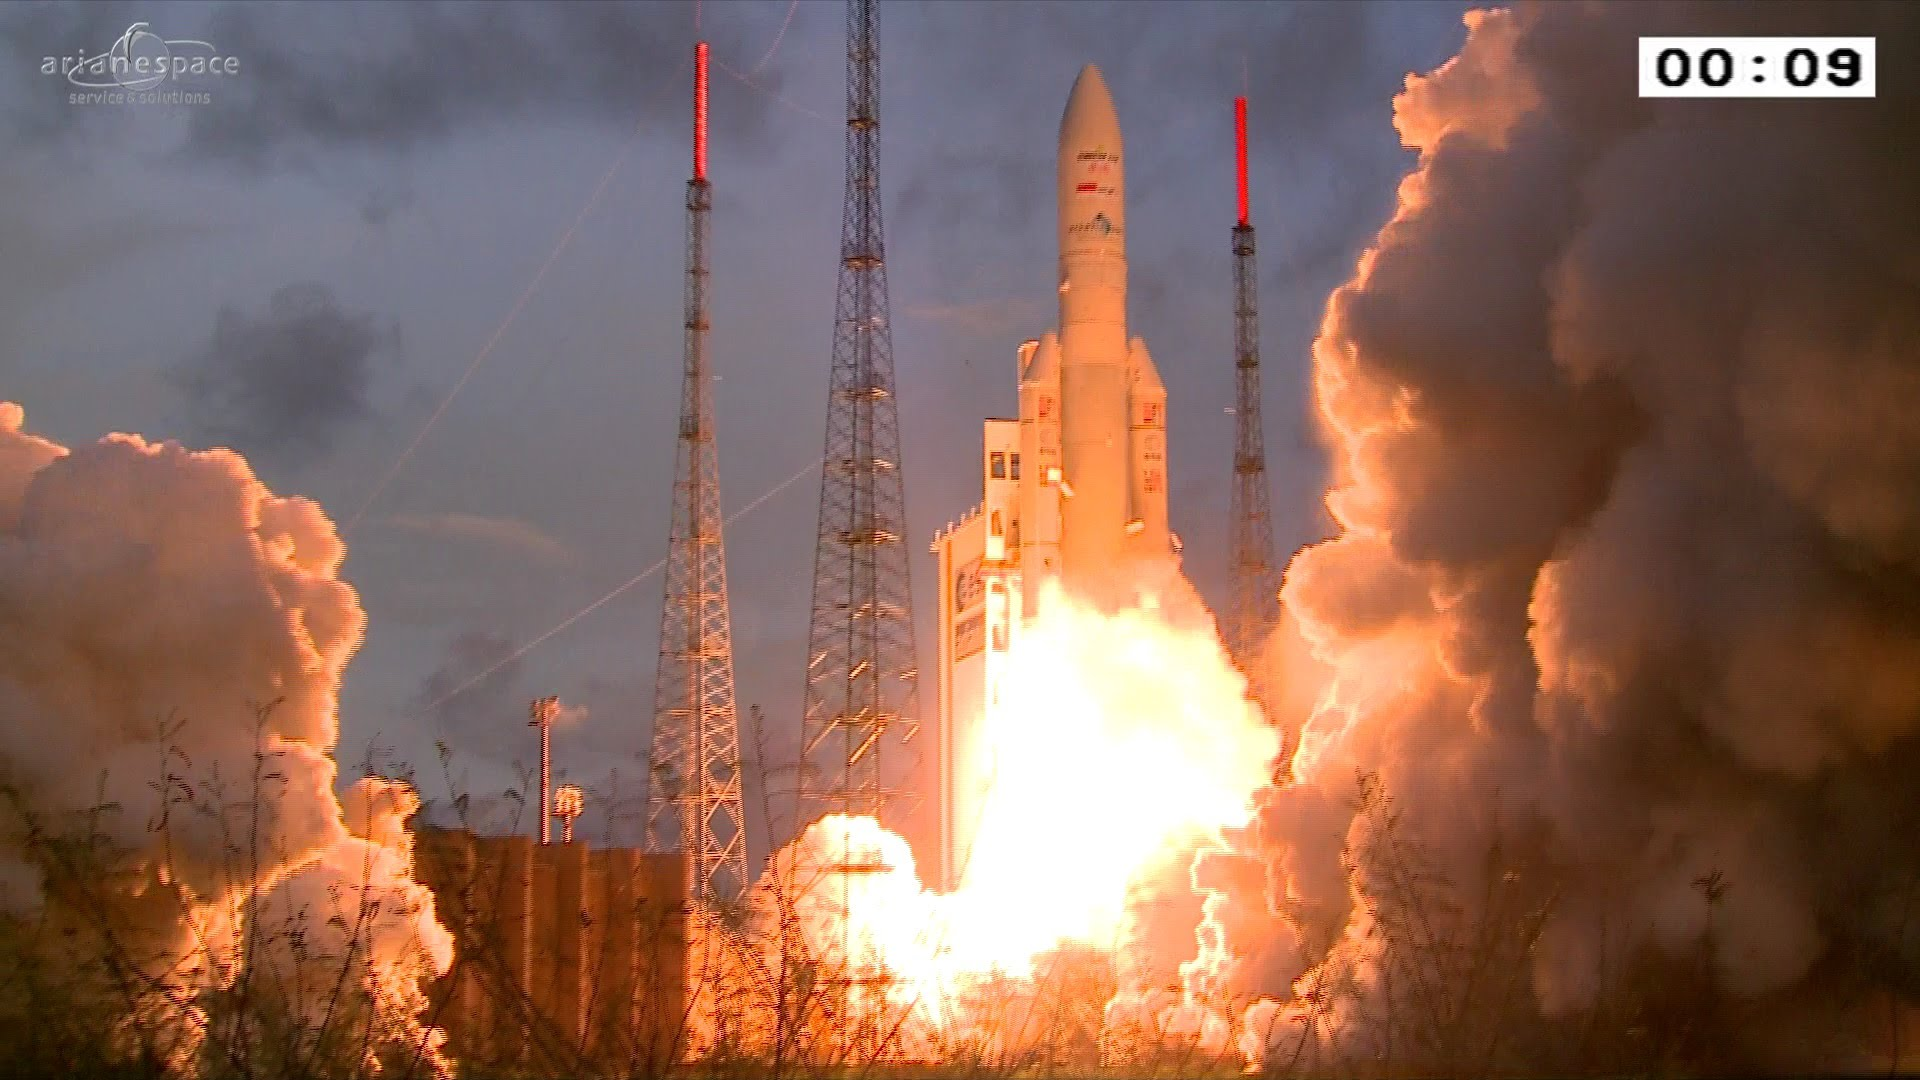 The State Of The Art French Vulcain Hydrogen-Oxygen Engine Lifting This Ariane V, And Actually The Entire Rocket, Was Developed Without Any Nazi Help